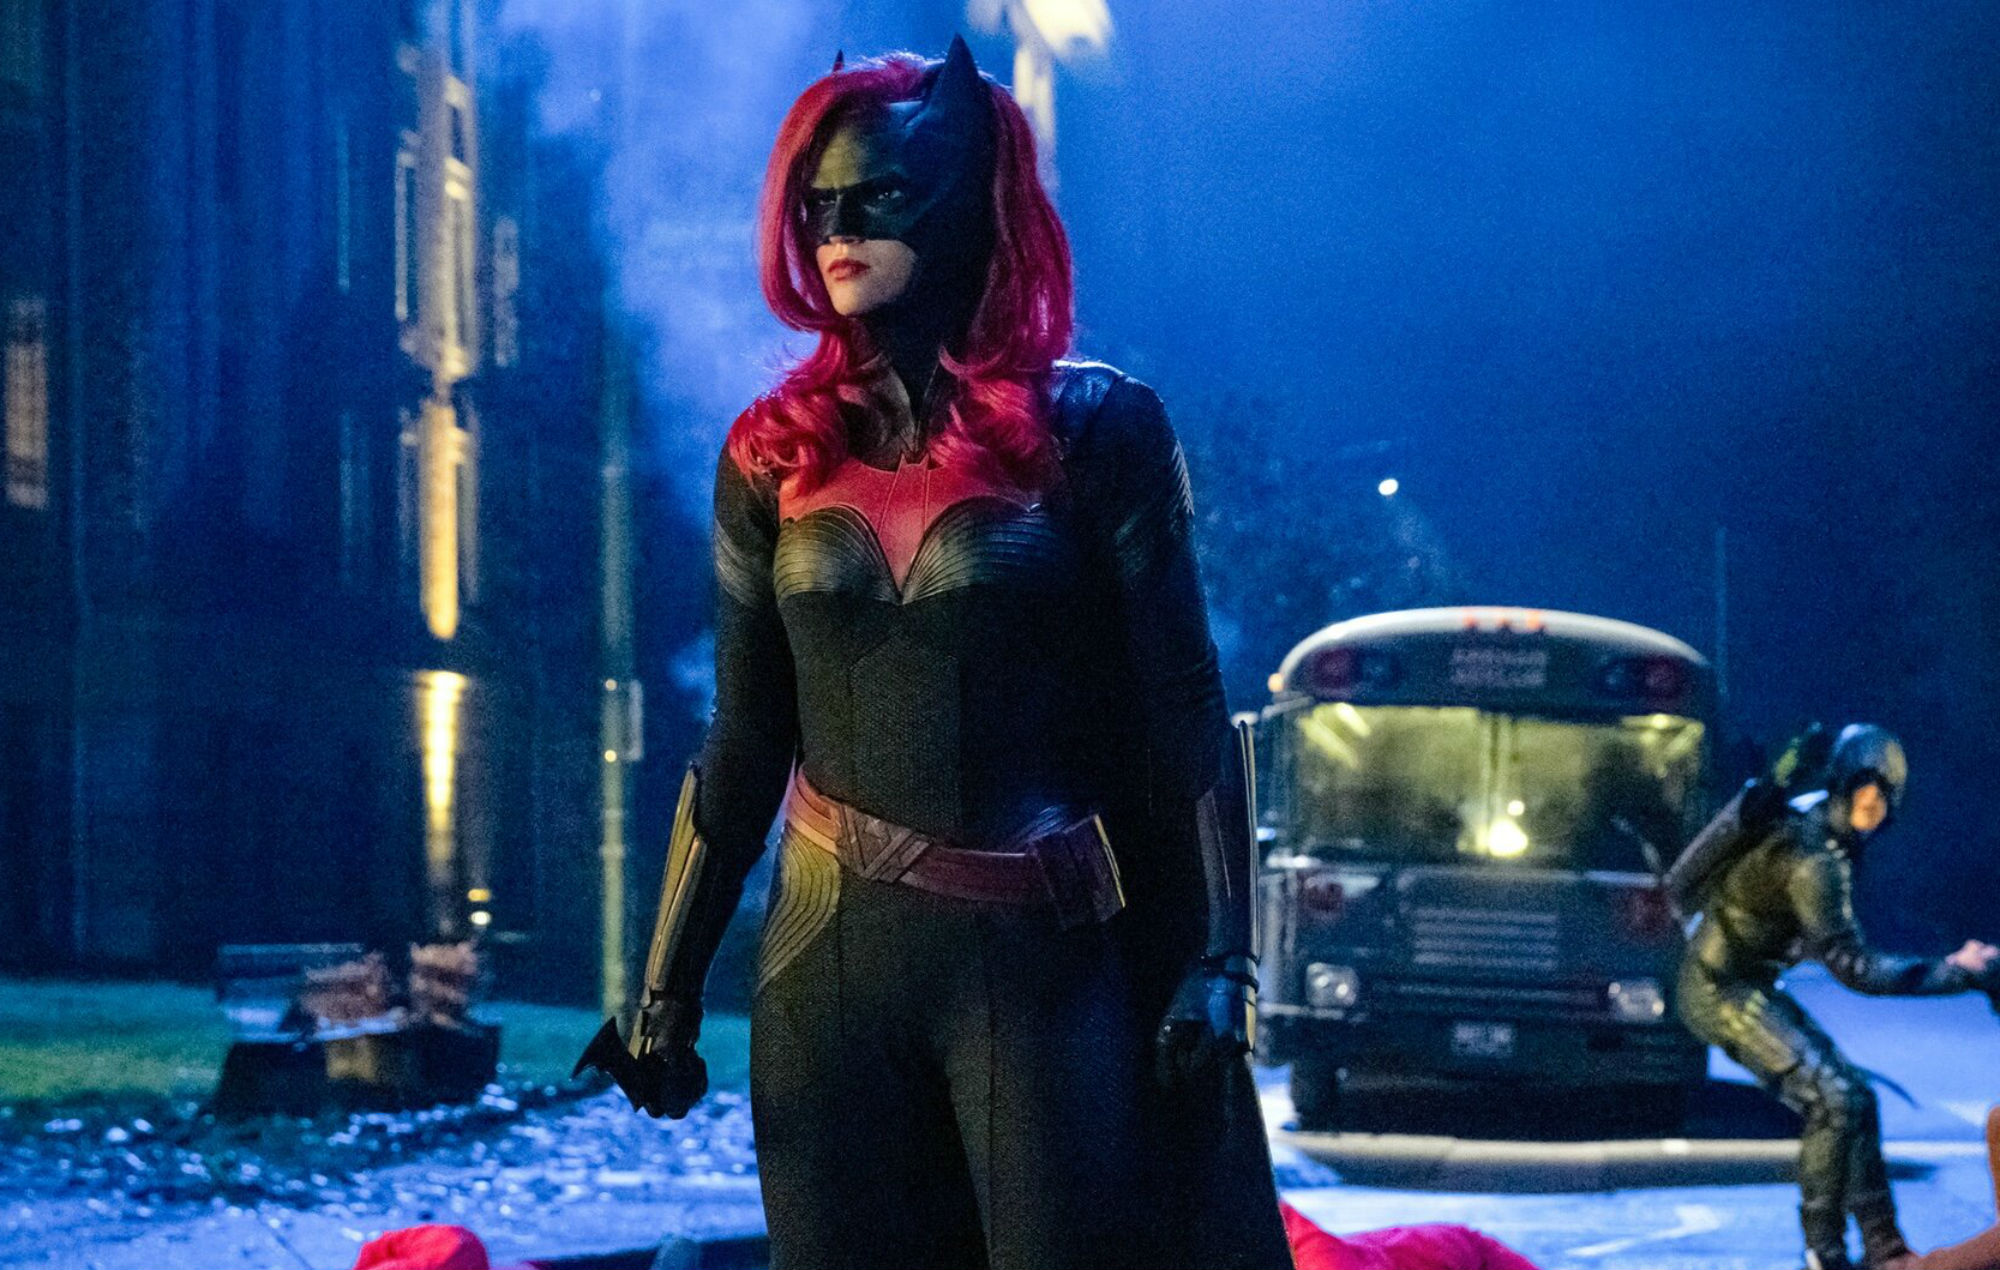 'Batwoman': Kate Kane won't be recast after Ruby Rose's exit